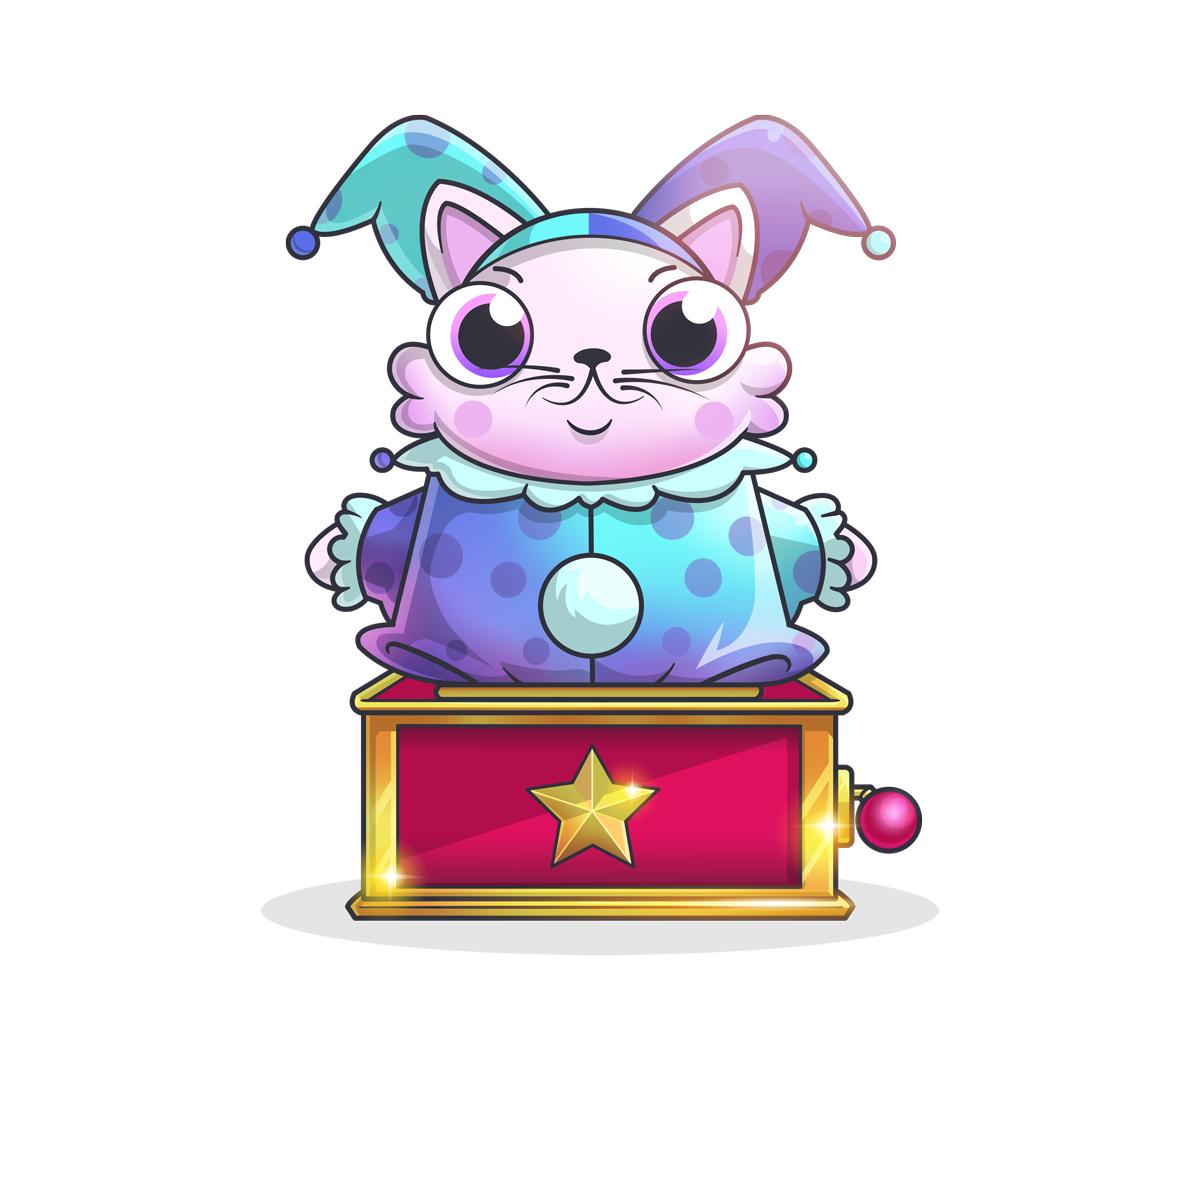 cryptokitty #1776983